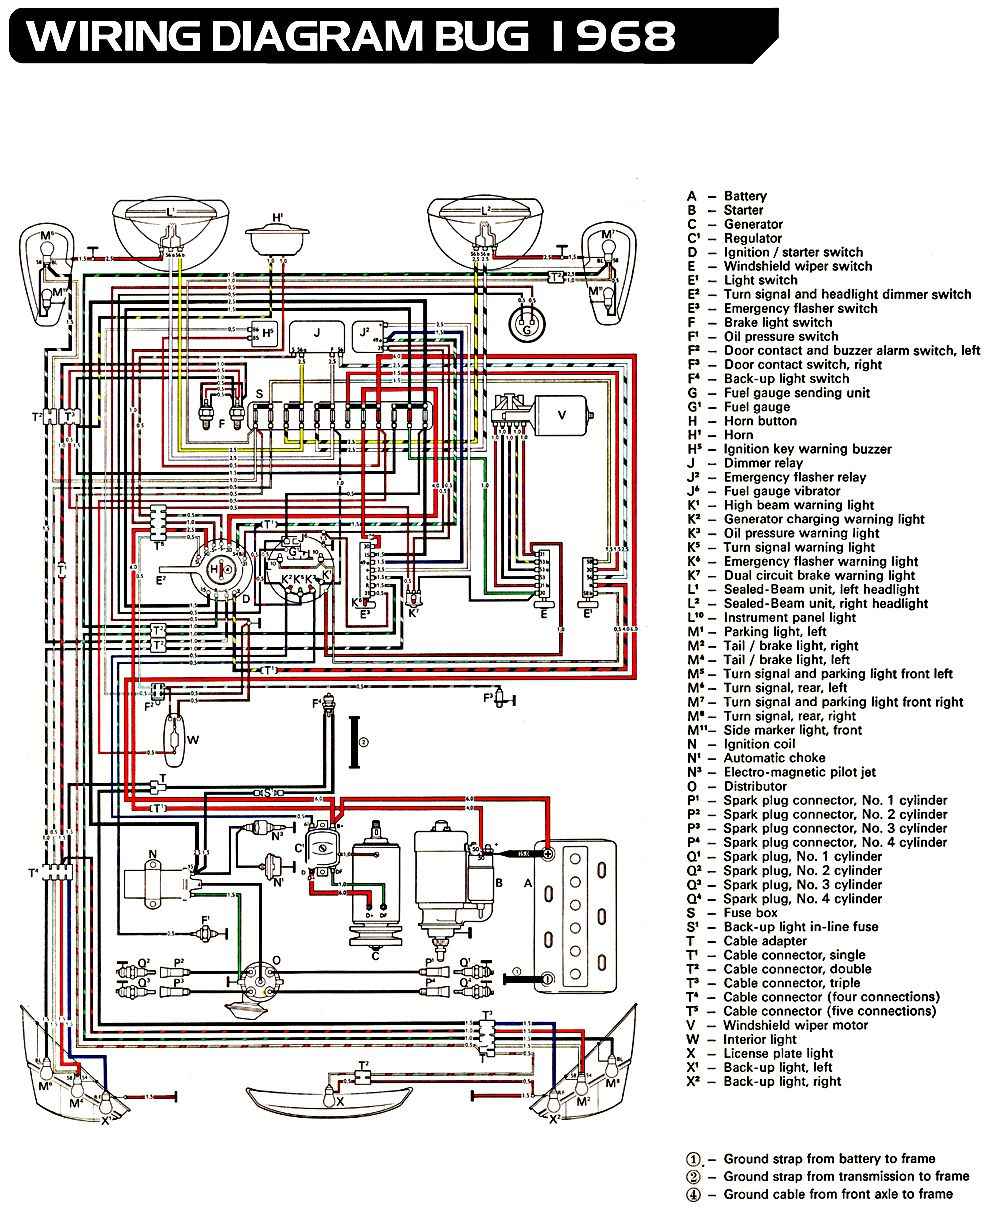 engine schematics, plumbing schematics, transmission schematics, transformer schematics, amplifier schematics, wire schematics, ford diagrams schematics, circuit schematics, electronics schematics, ignition schematics, generator schematics, piping schematics, ecu schematics, ductwork schematics, motor schematics, computer schematics, electrical schematics, tube amp schematics, engineering schematics, design schematics, on 1960 volkswagen wiring schematic